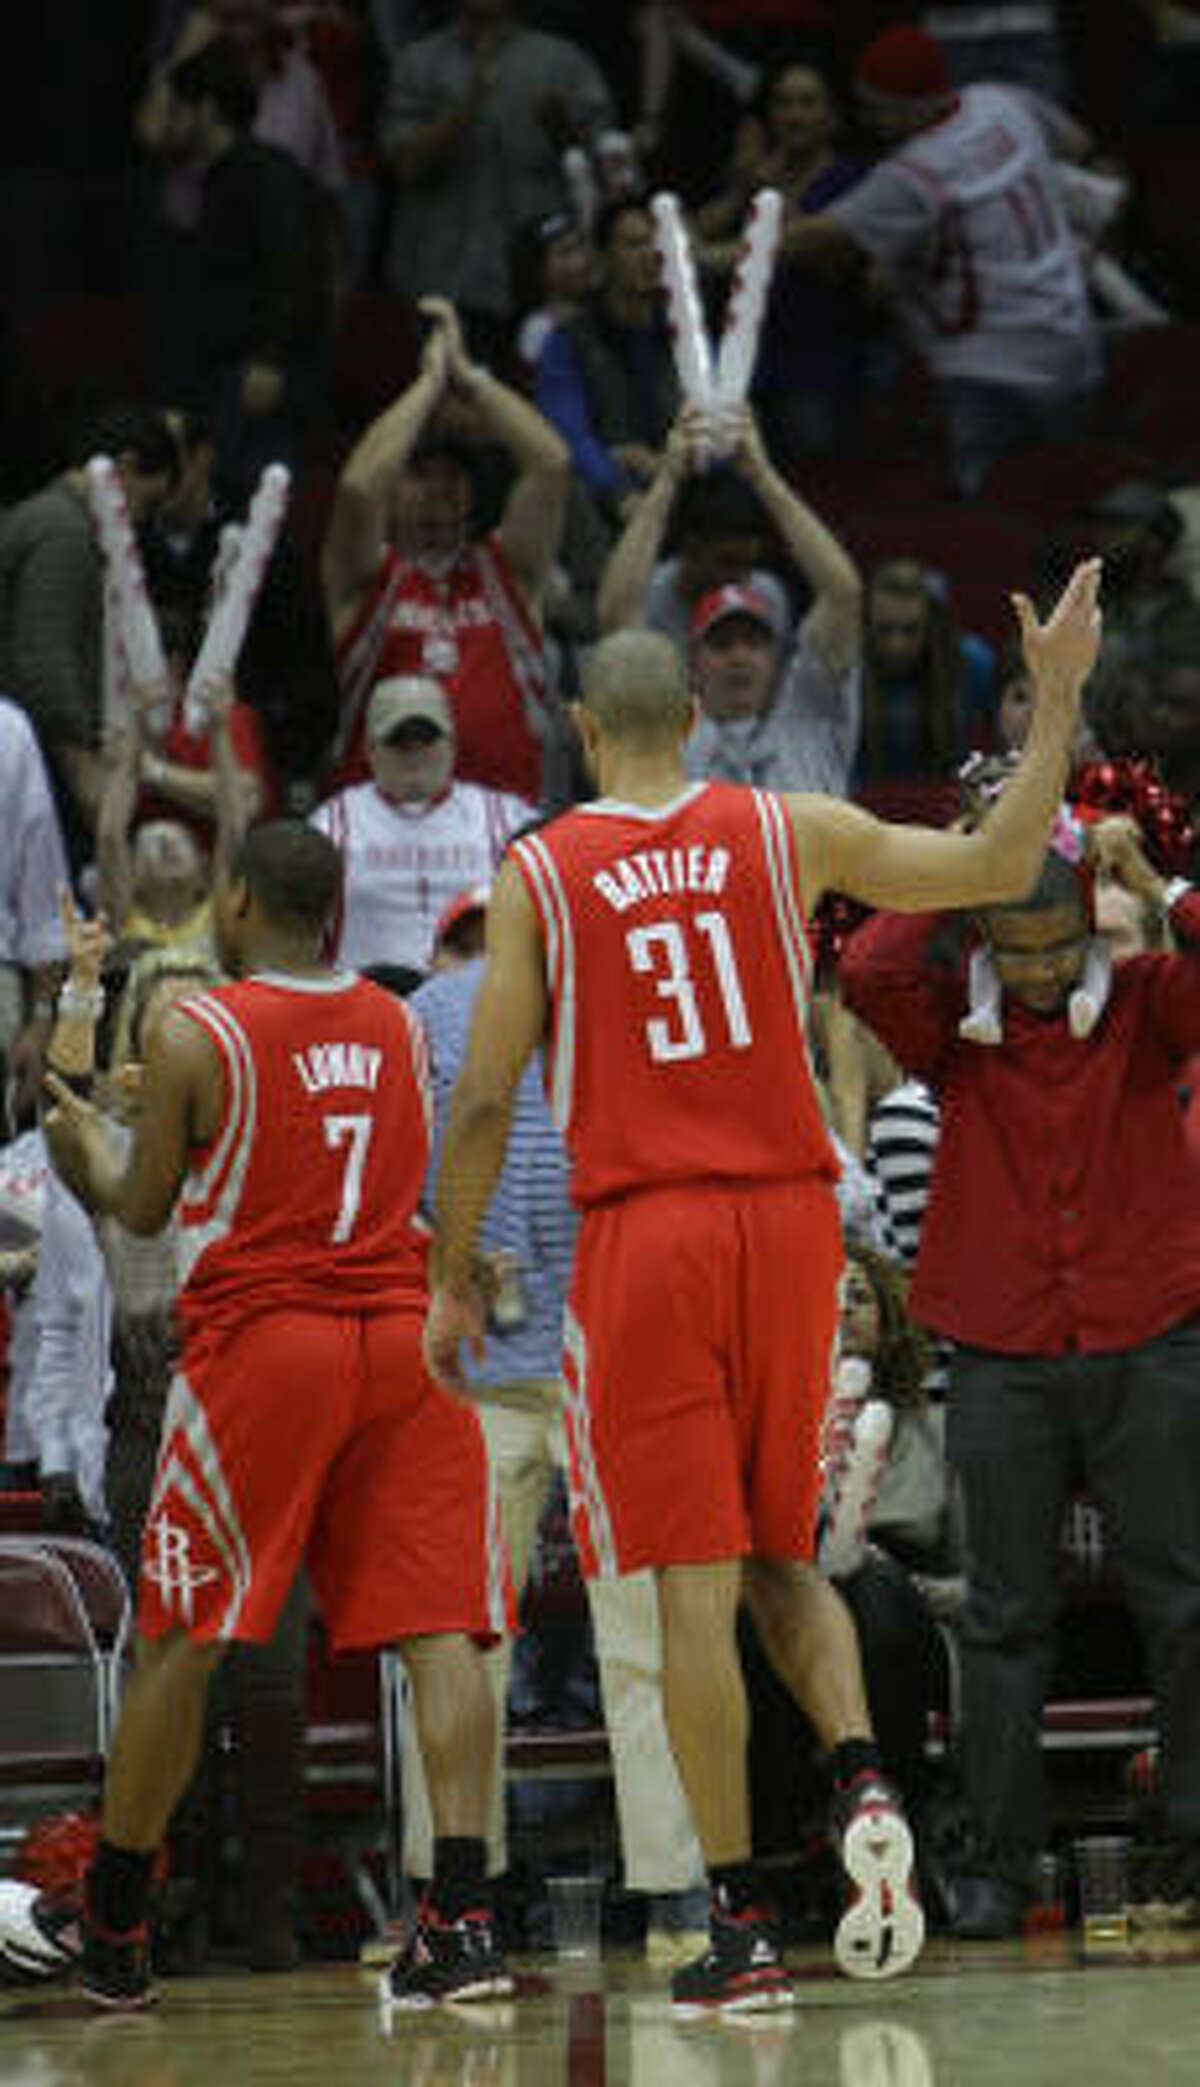 Rockets forward Shane Battier (31) waves to the crowd as he walks off the court after Friday's game.